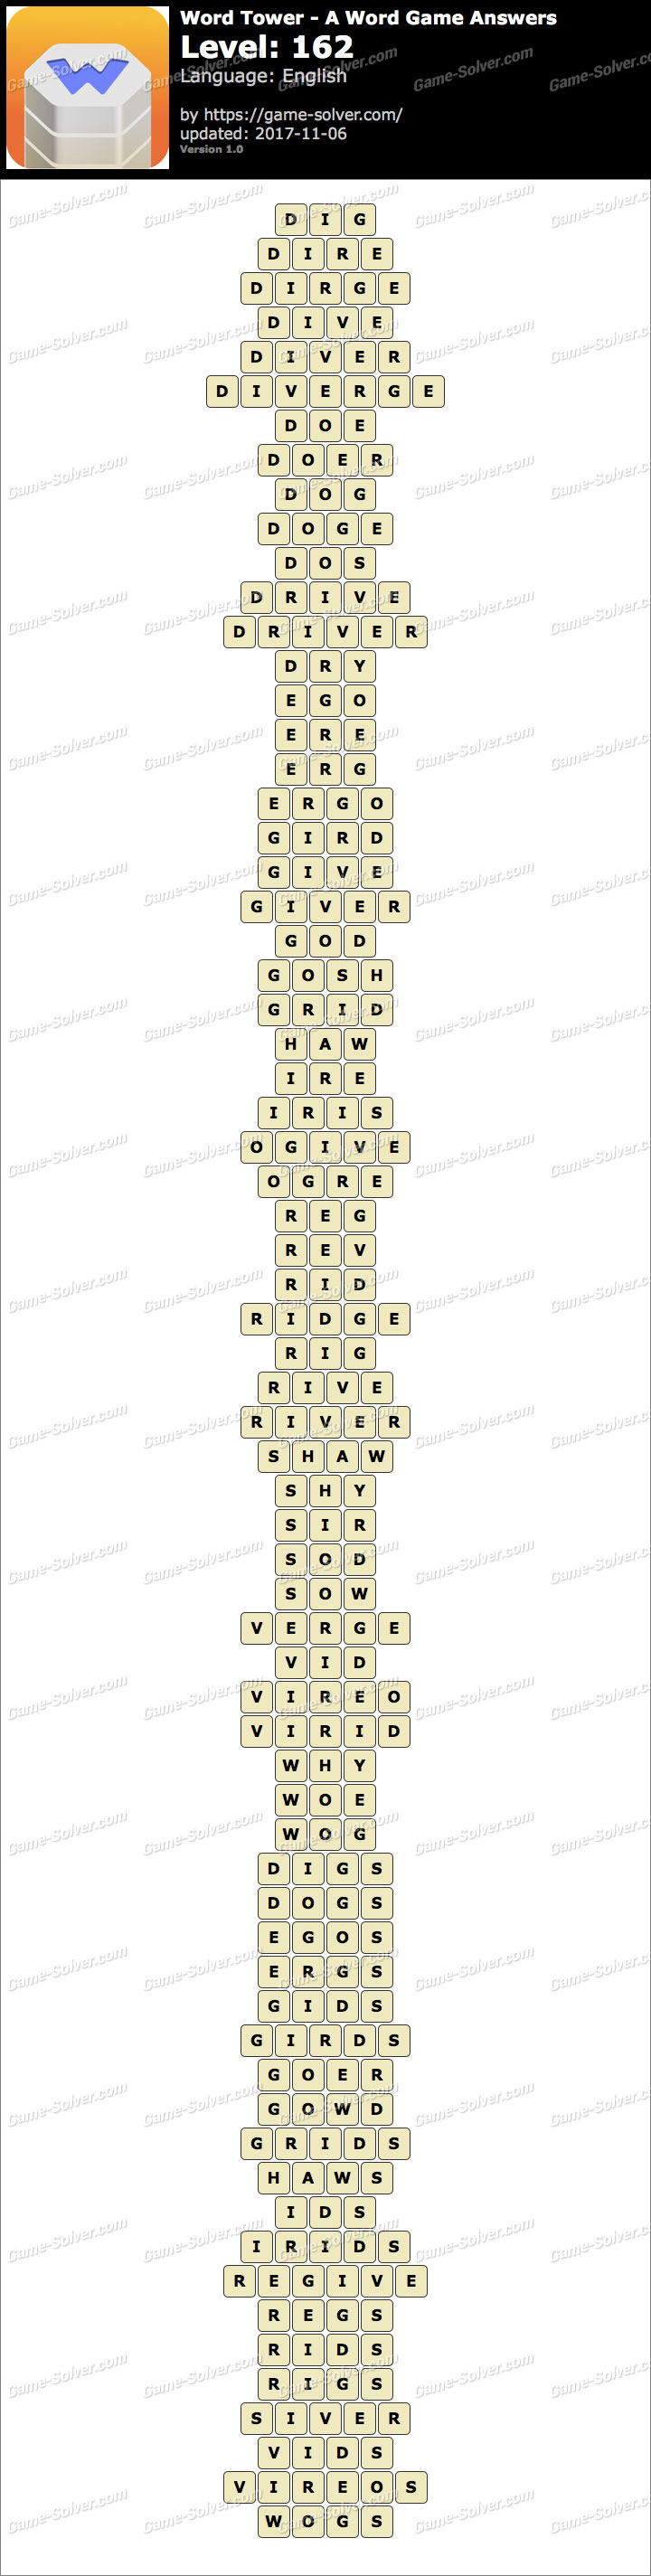 Word Tower Level 162 Answers